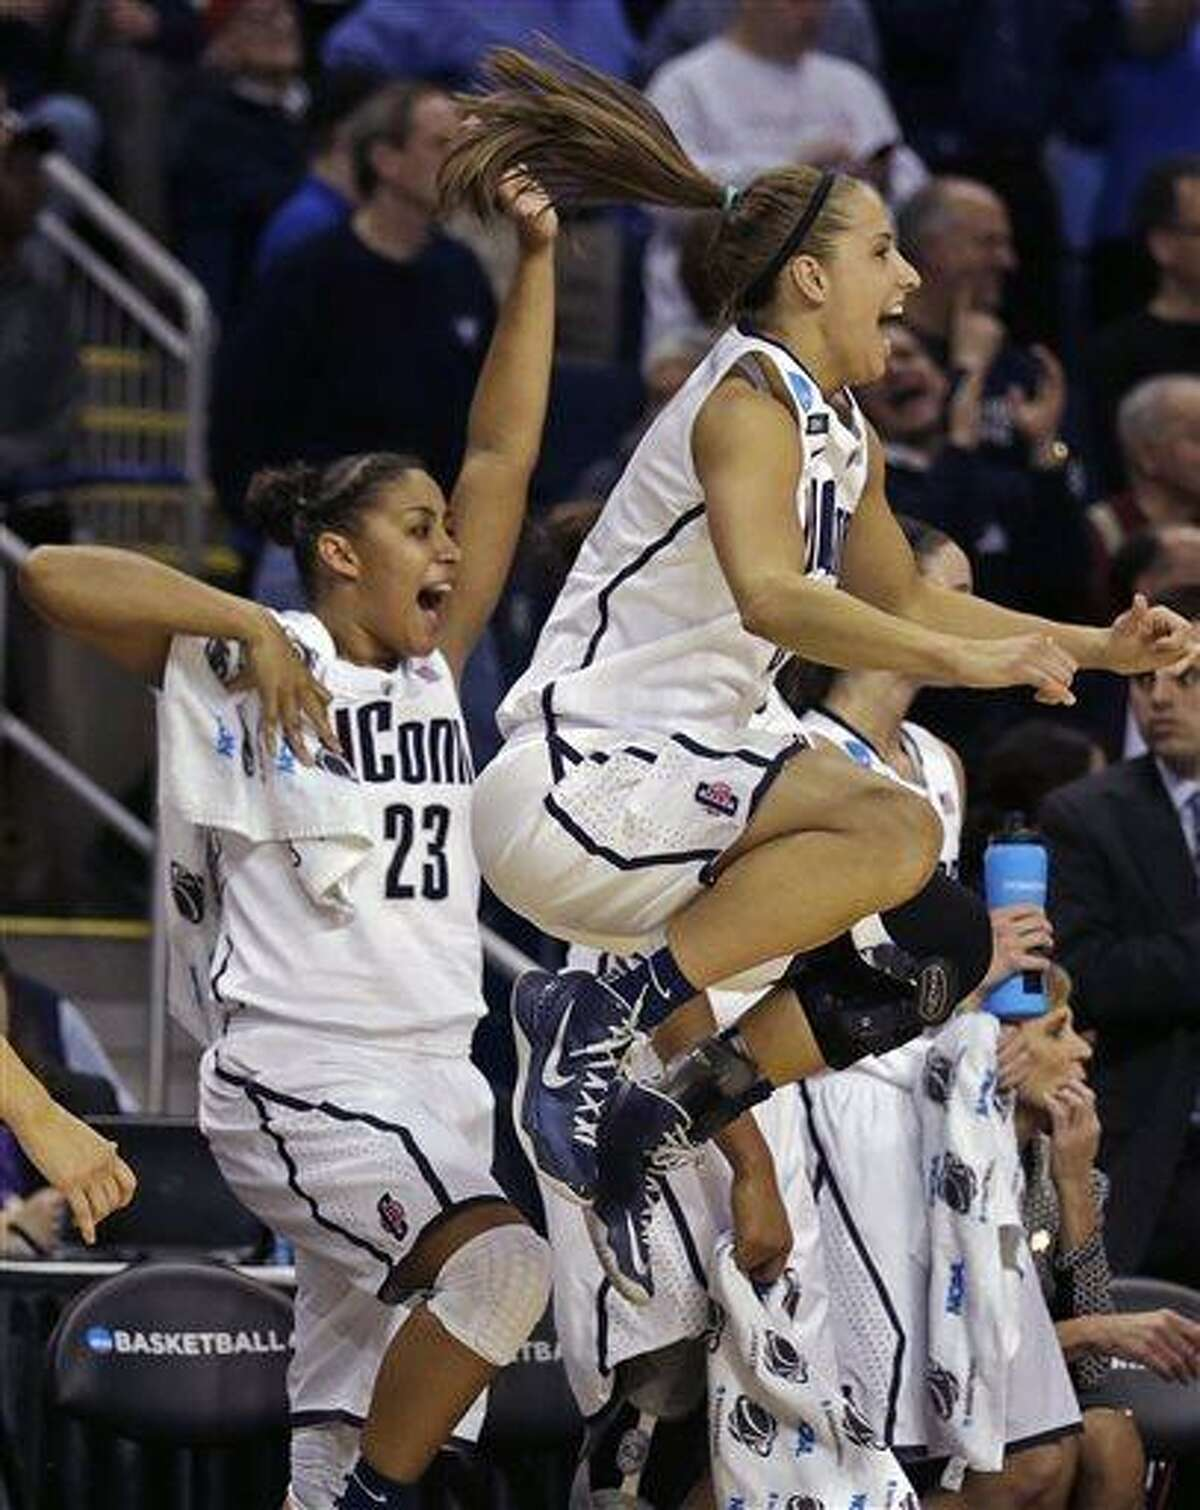 Connecticut guard Caroline Doty, right, leaps in the air as she celebrates with teammate Kaleena Mosqueda-Lewis (23) in the final seconds of the second half of a women's NCAA regional final basketball game against Kentucky in Bridgeport, Conn., Monday, April 1, 2013. Connecticut won 83-53 and advances to the Final Four. (AP Photo/Charles Krupa)